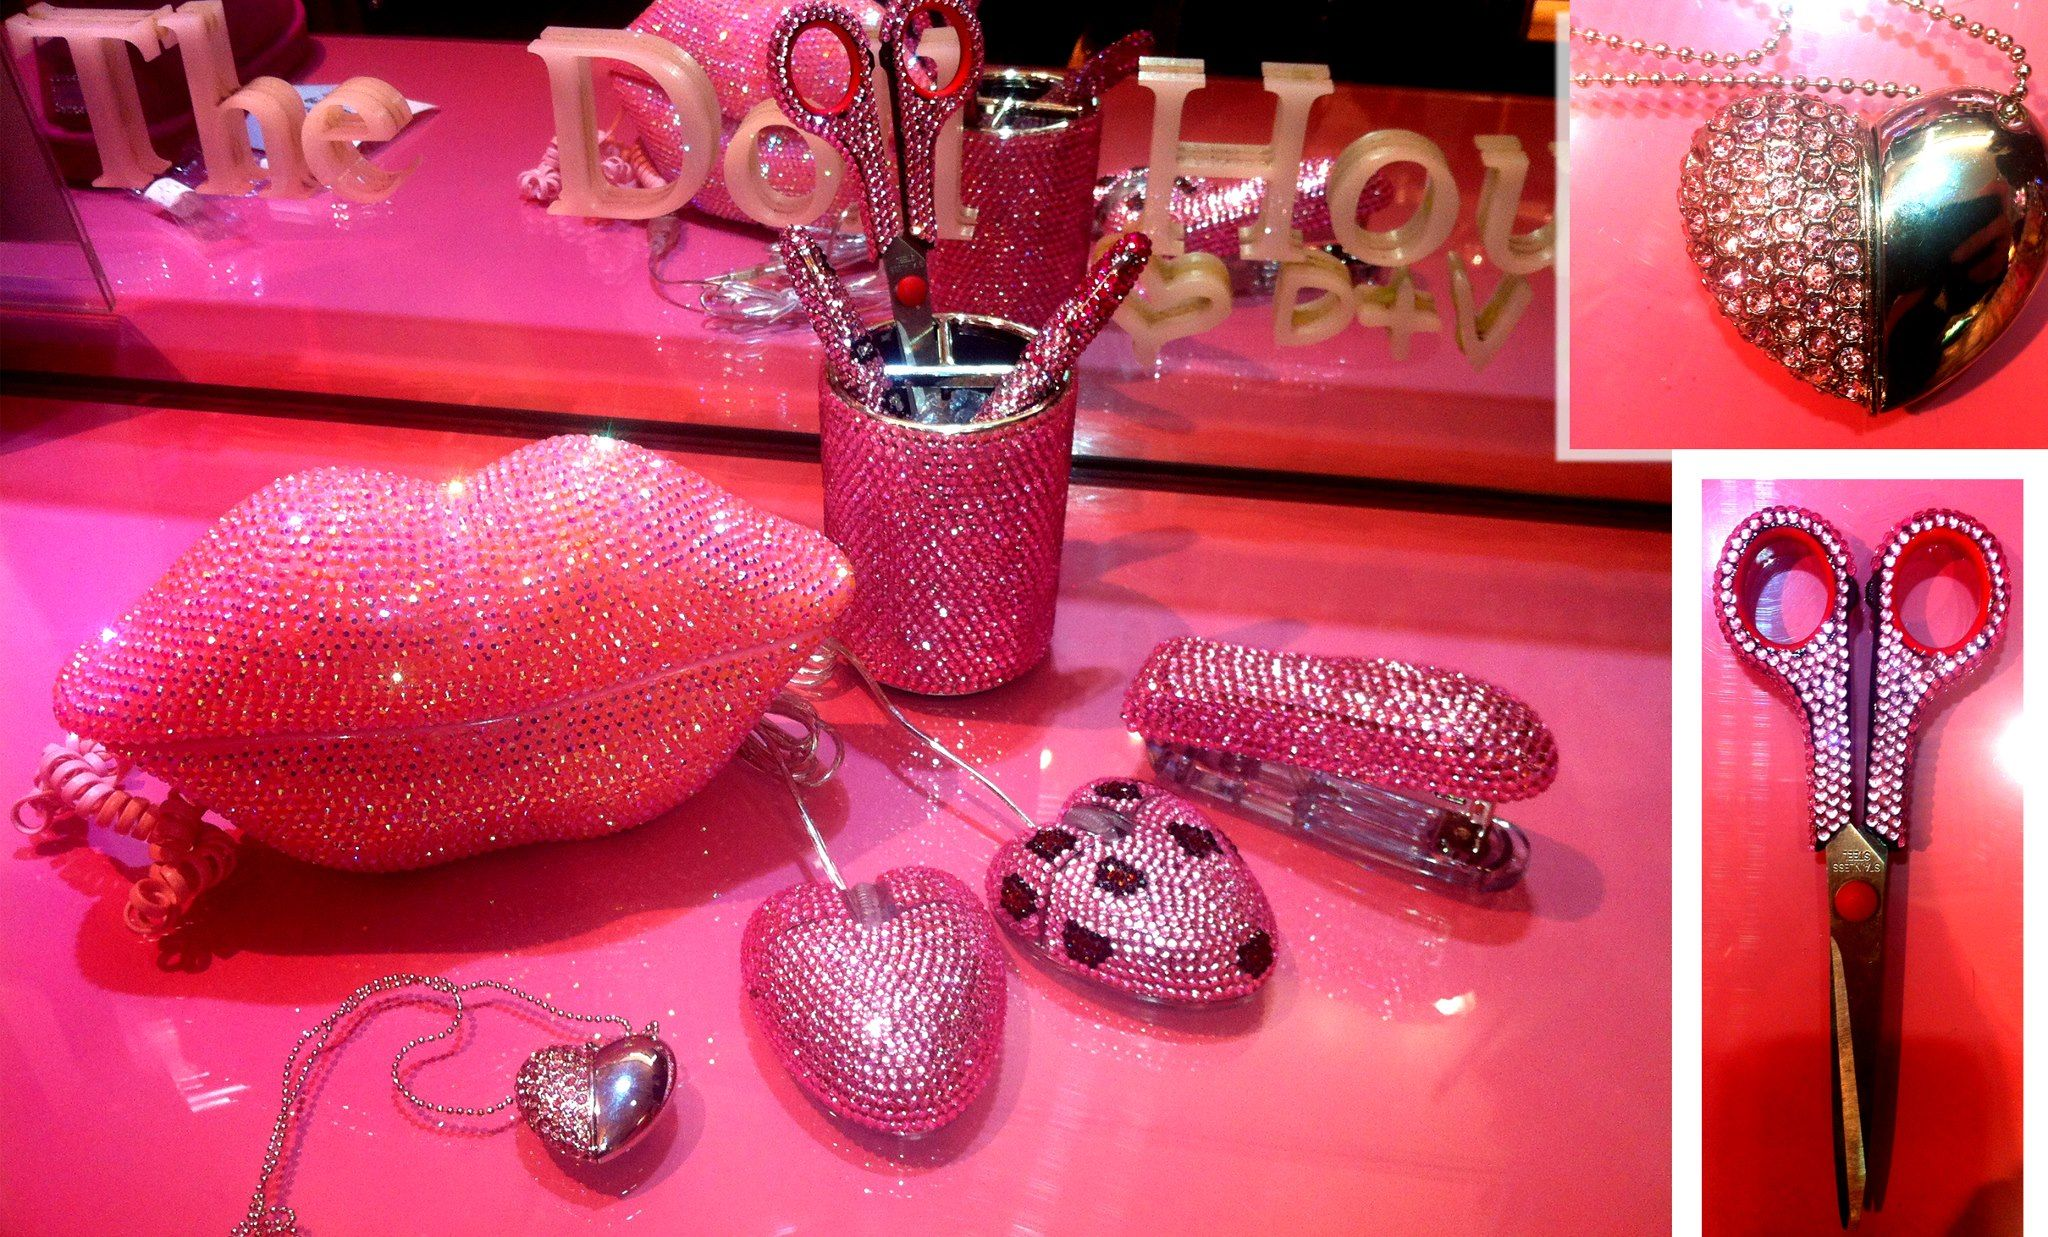 Girly Things 3 With Images Pink Girly Things Pink Love Pink